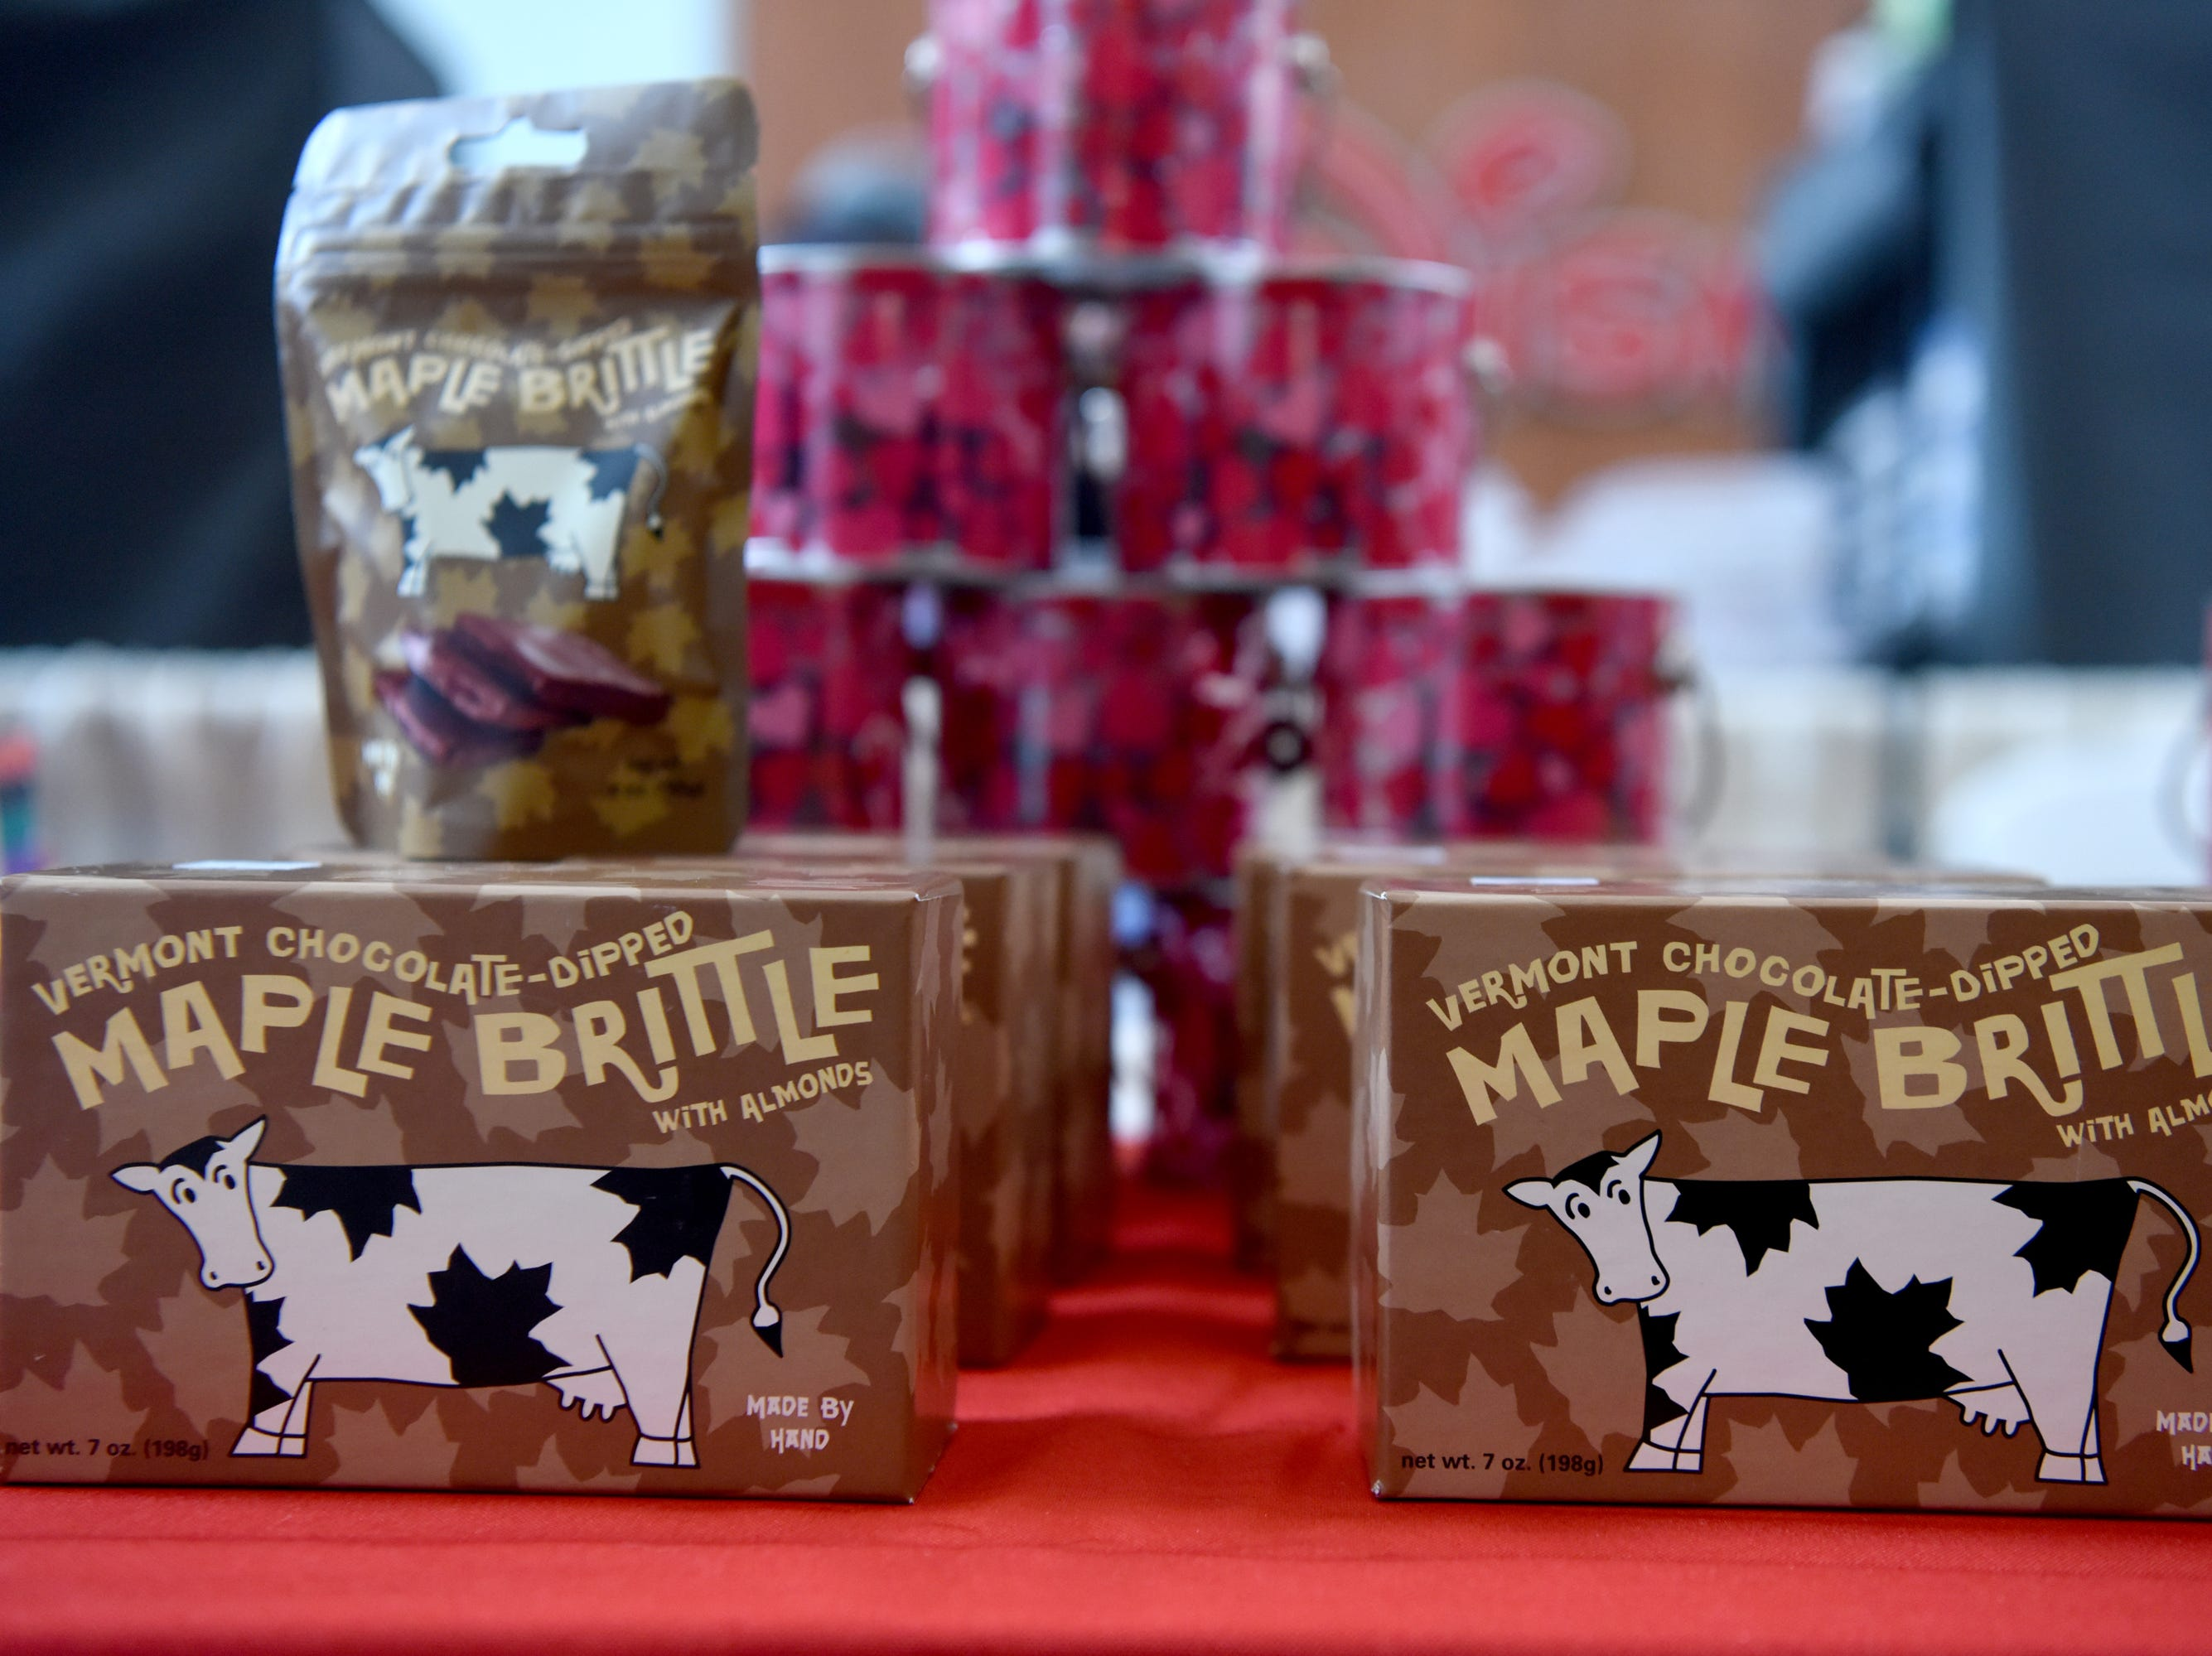 Sweet on Vermont, a company based in Burlington, Vt. and owned by Teaneck native Erika Henik, sold its Vermont Maple Brittle and Mooonlight in Vermont Bars at the Chocolate Expo on Sunday, January 27, 2019, at Westfield Garden State Plaza in Paramus.